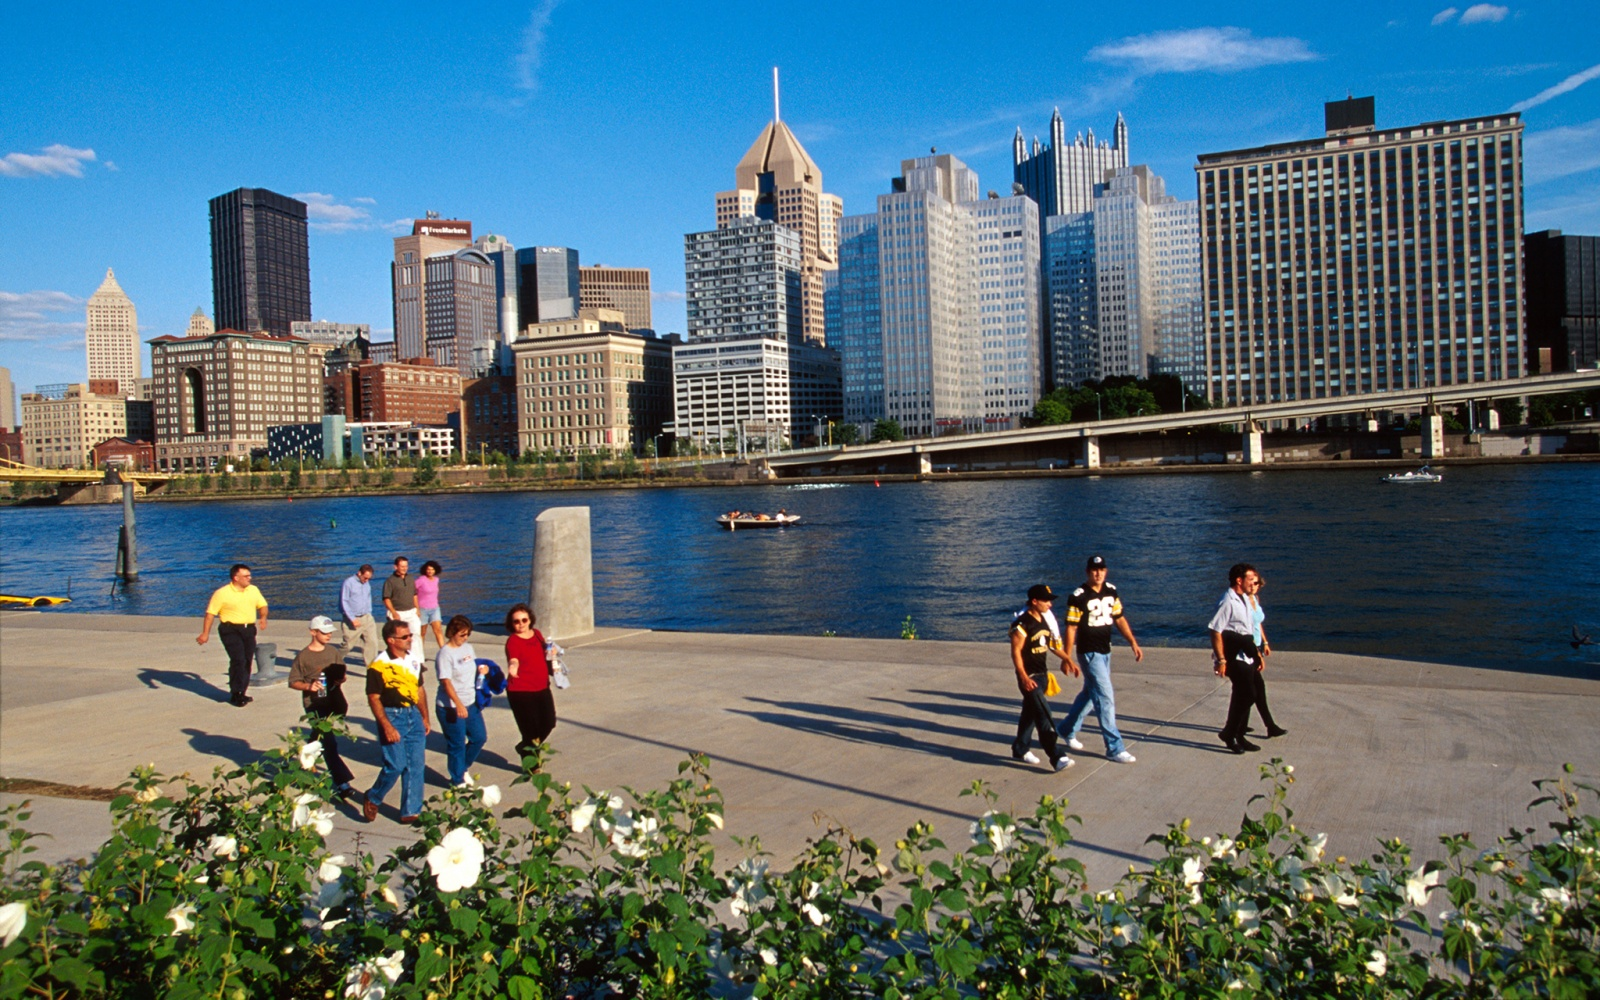 walking along the river in Pittsburgh, PA